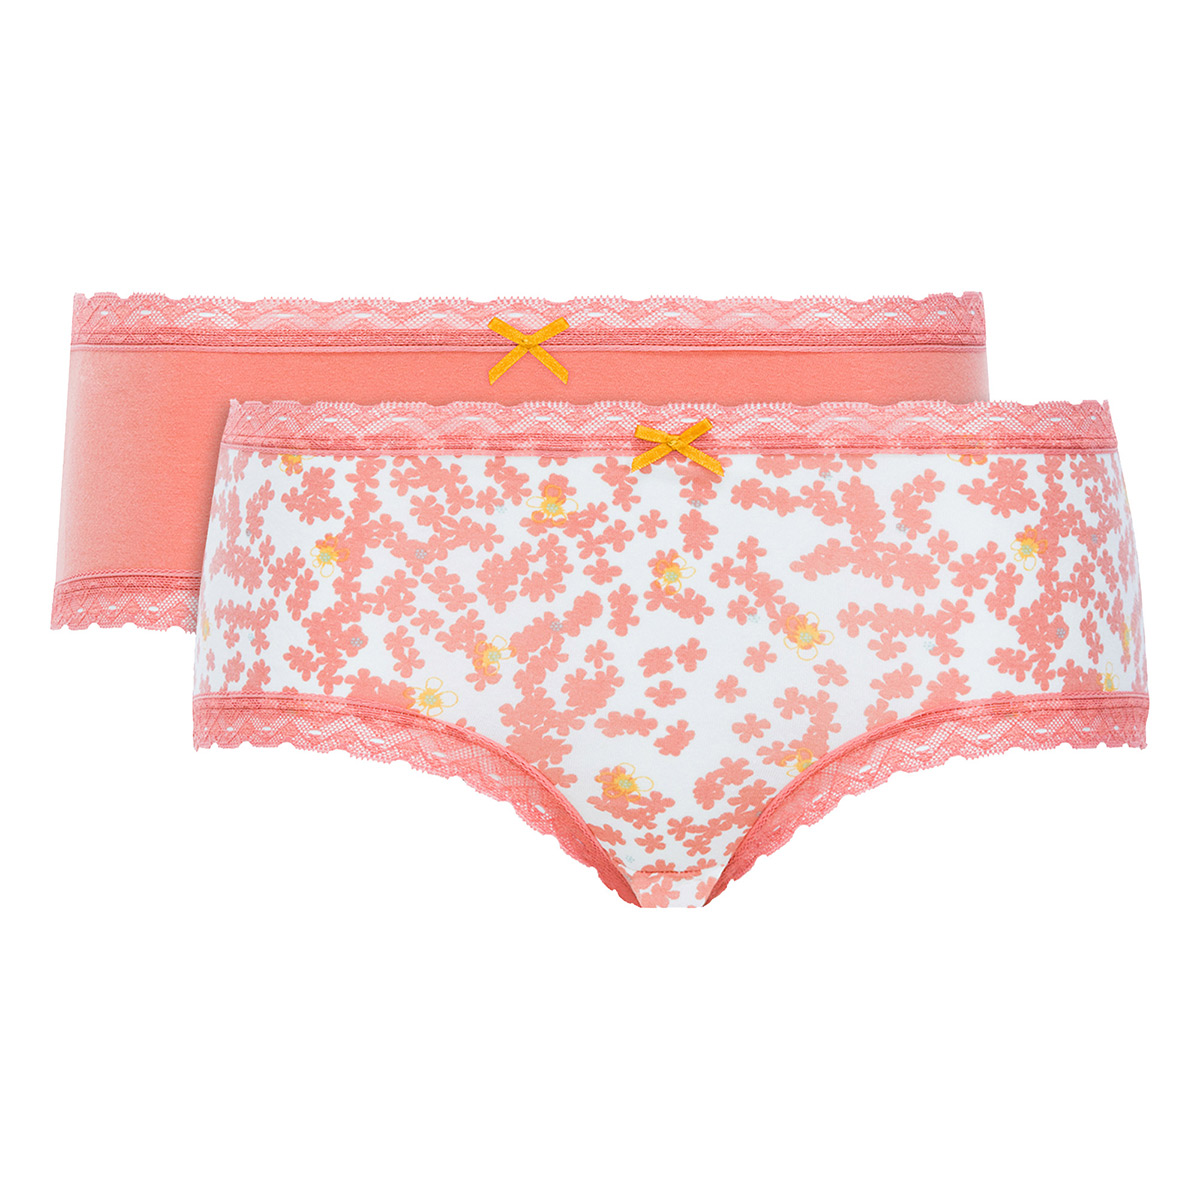 Lot de 2 boxers femme coton orange uni et imprimé - Basic Cotton Fancy, , PLAYTEX